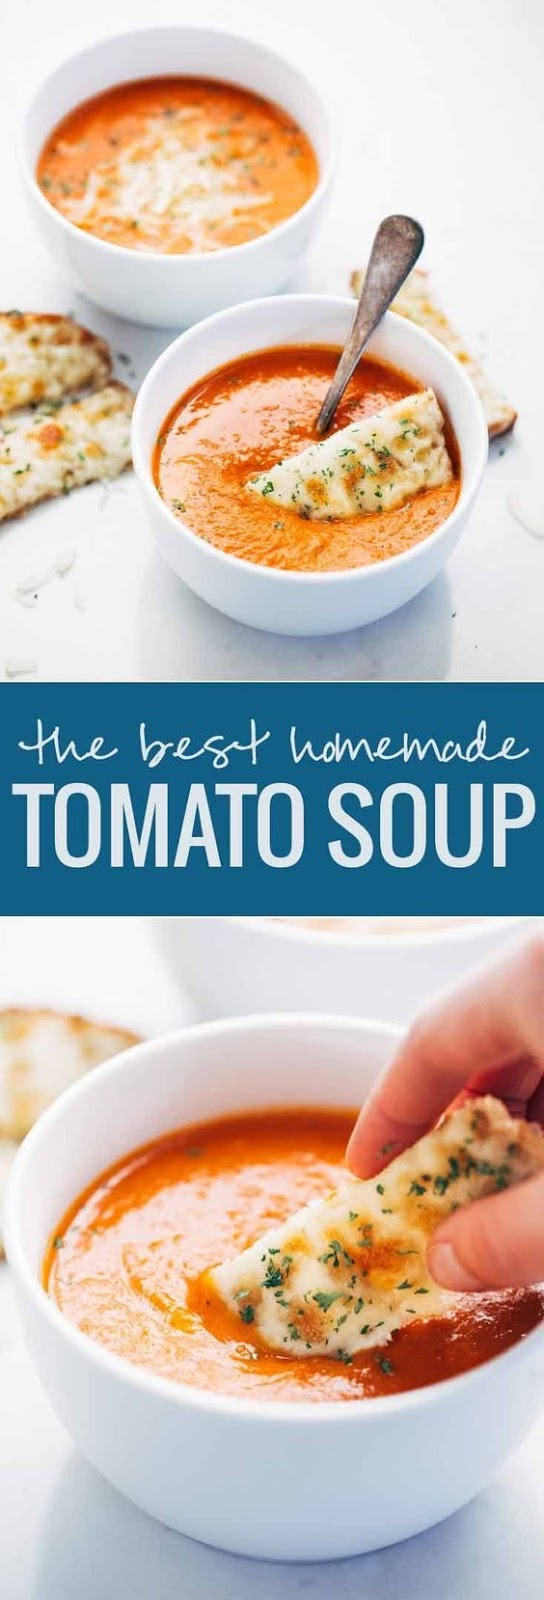 Just carrots, onions, garlic, tomatoes, broth, and bacon are all you need for homemade tomato soup. It's deliciously rich in flavor and comes together in just under an hour.